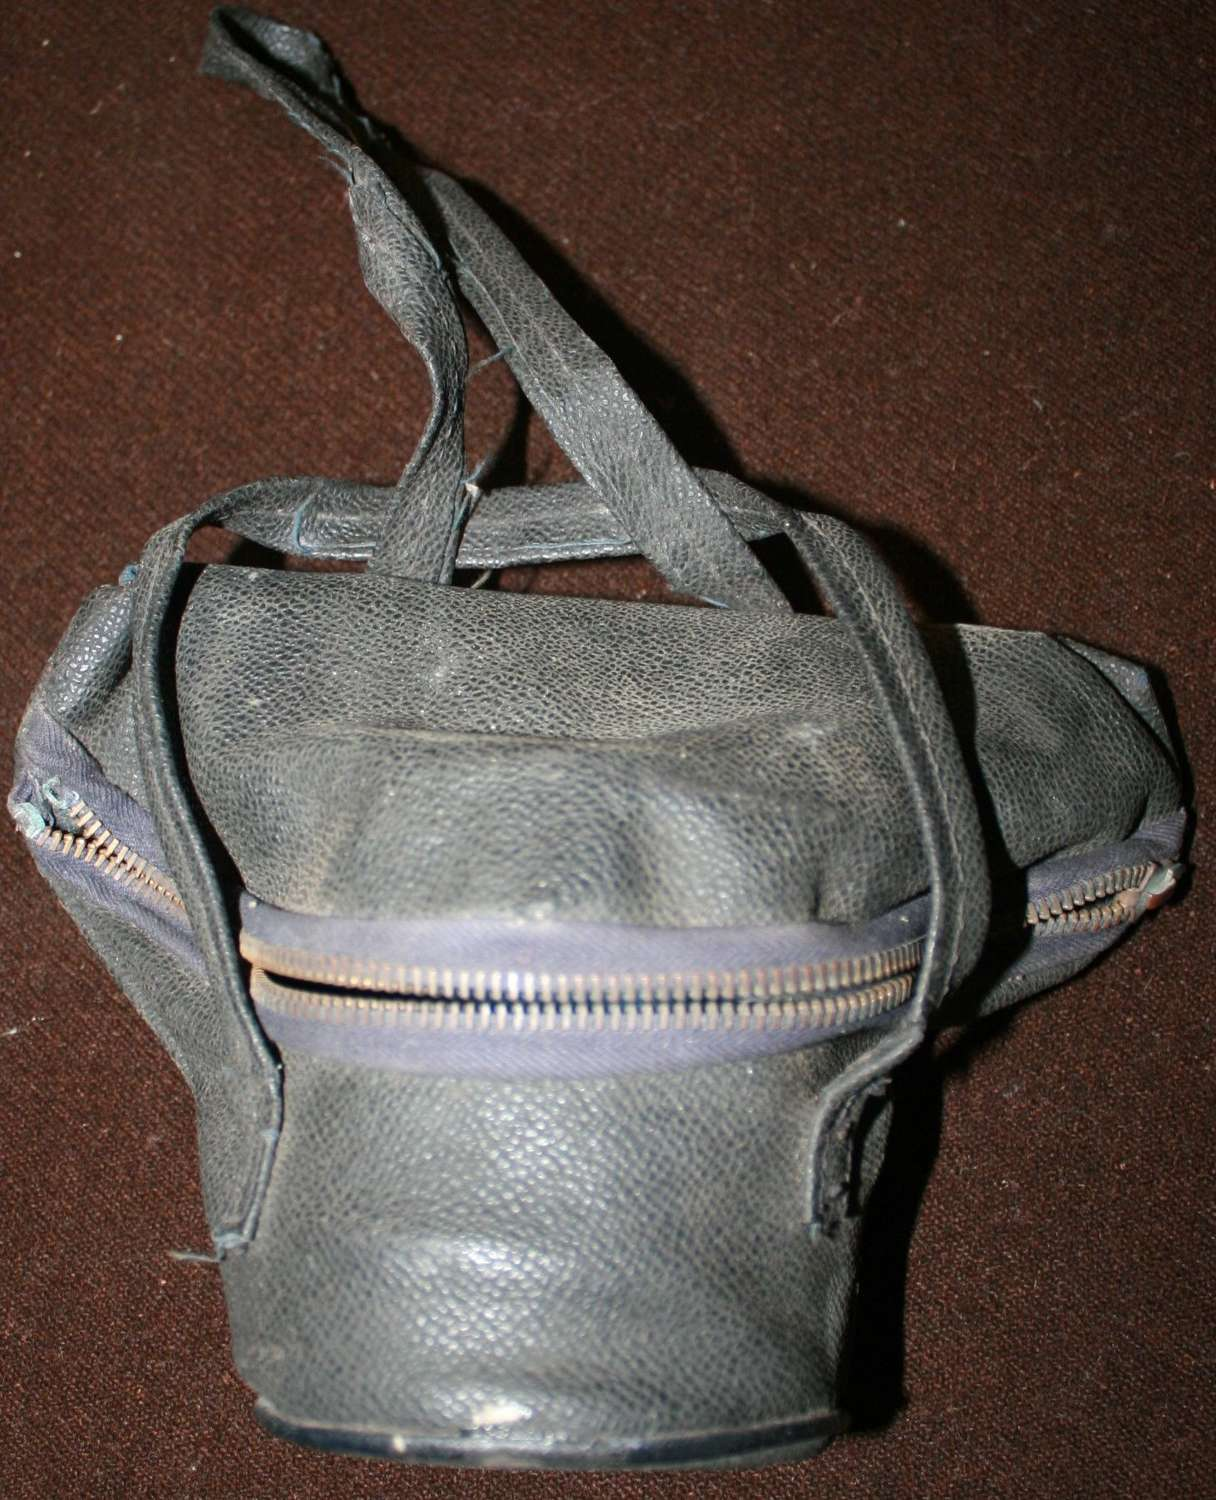 A SCARCE WWII LADIES GAS MASK CARRYING BAG